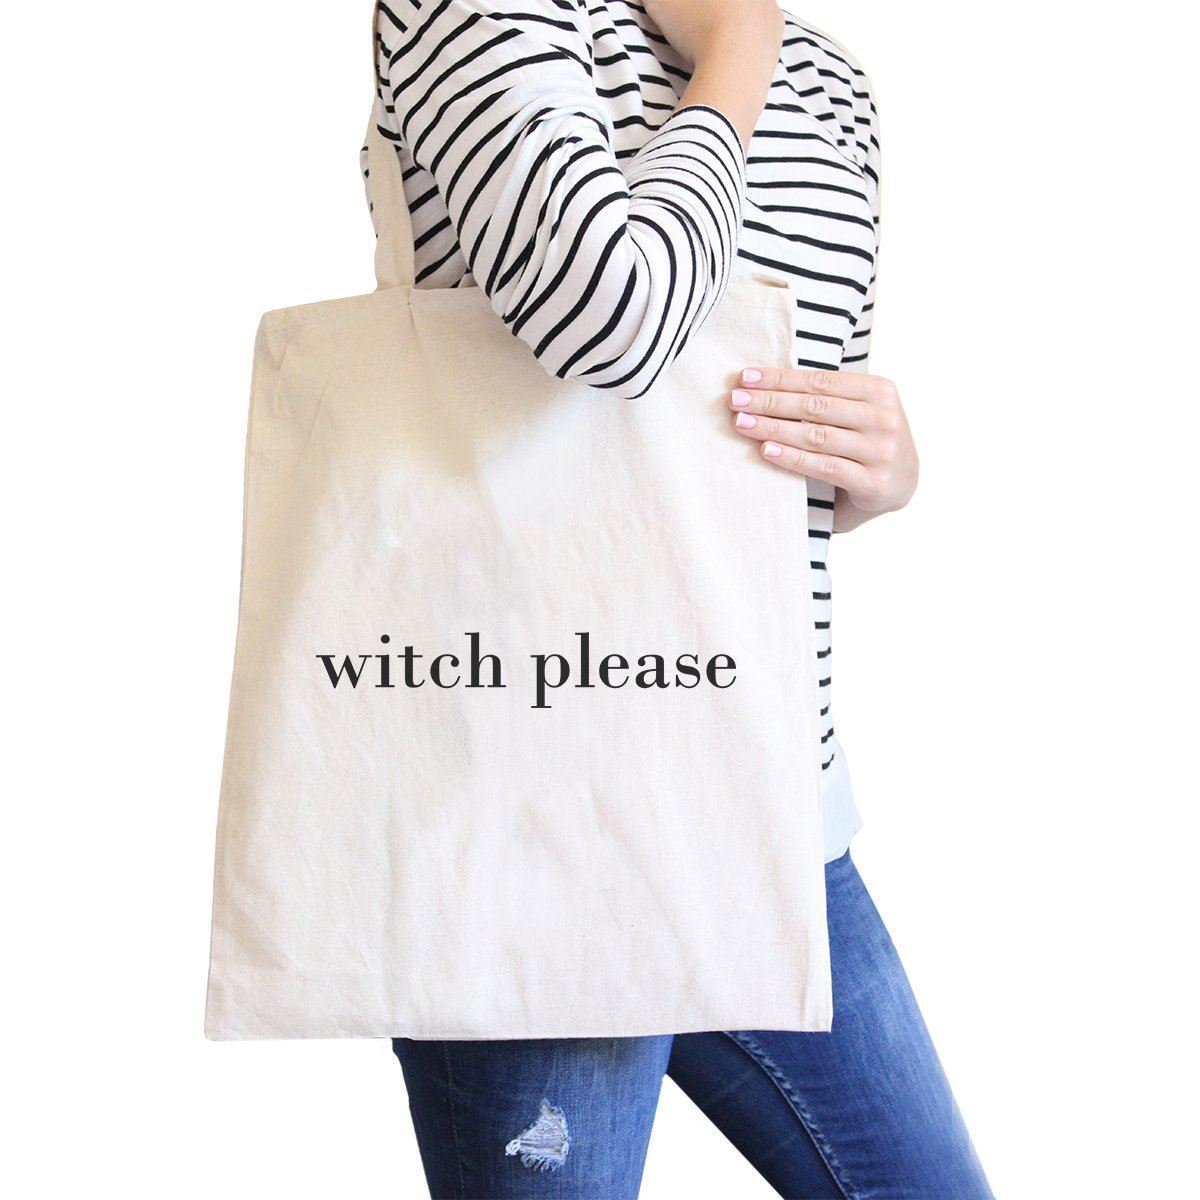 Primary image for Witch Please Natural Canvas Bags